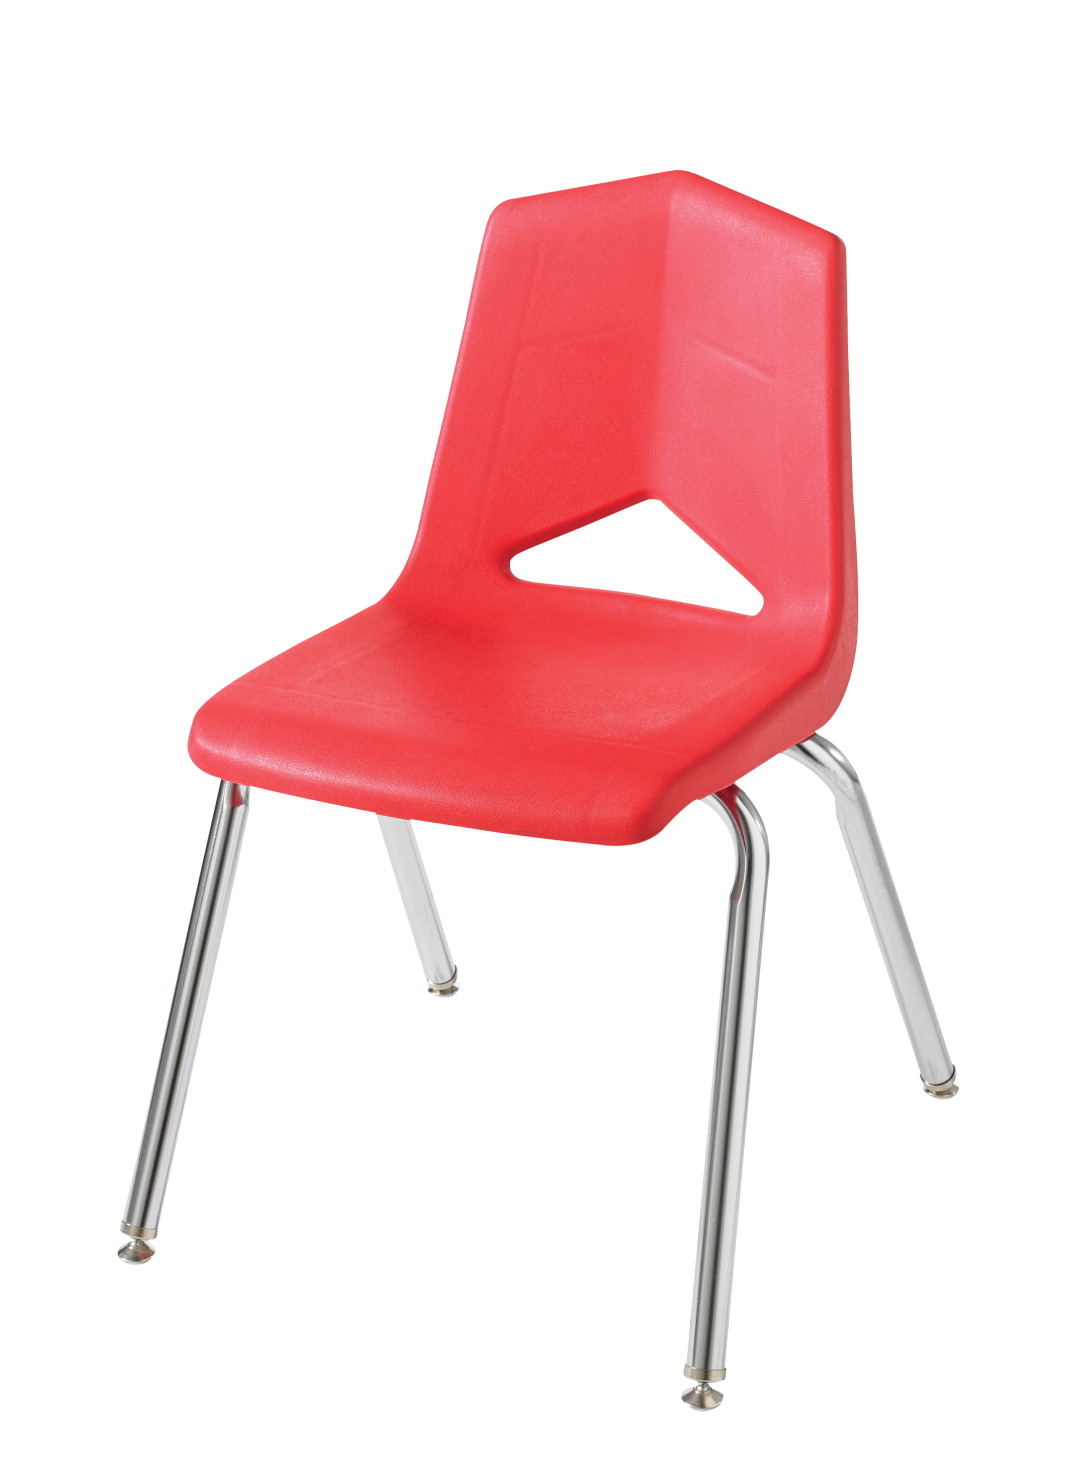 Royal Seating 1100 Four Leg Soft Plastic Shell Chair, 18 Inch A+ Seat, Chrome Frame, Various Options